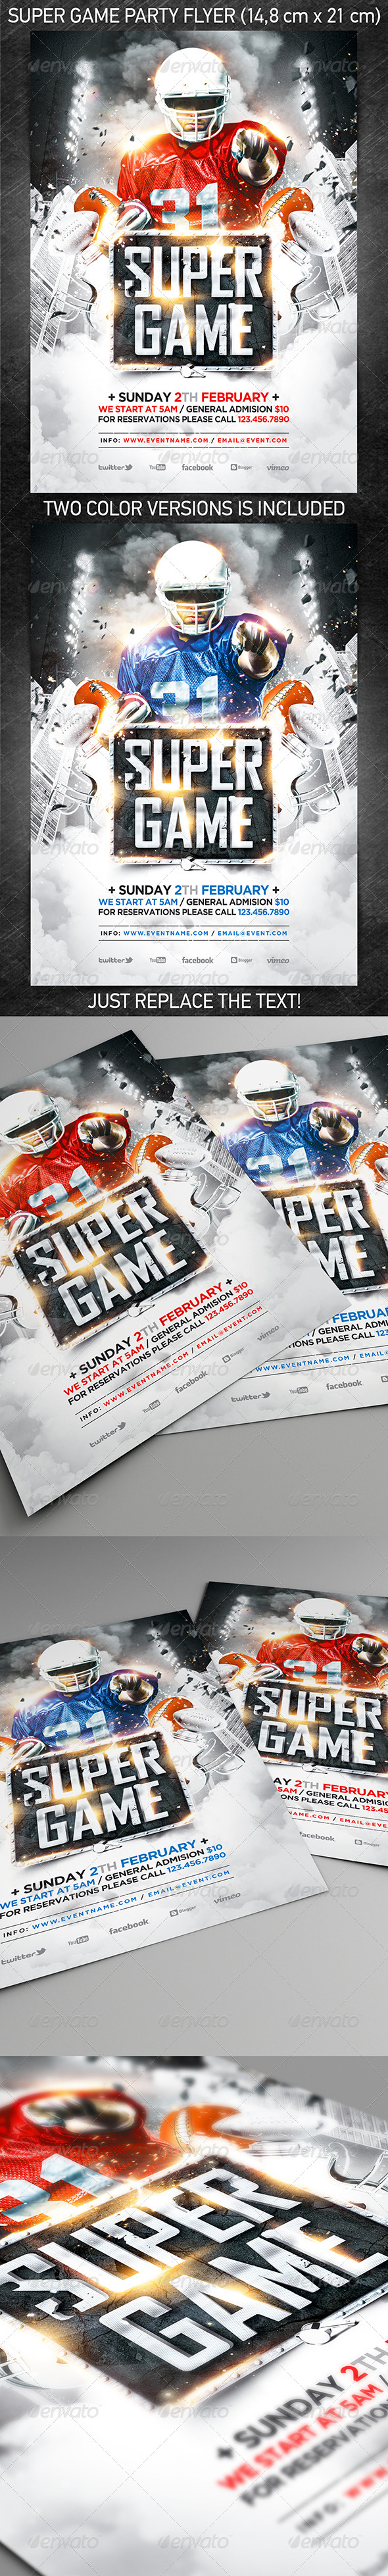 American Football Super Game Flyer vol.2 - Sports Events